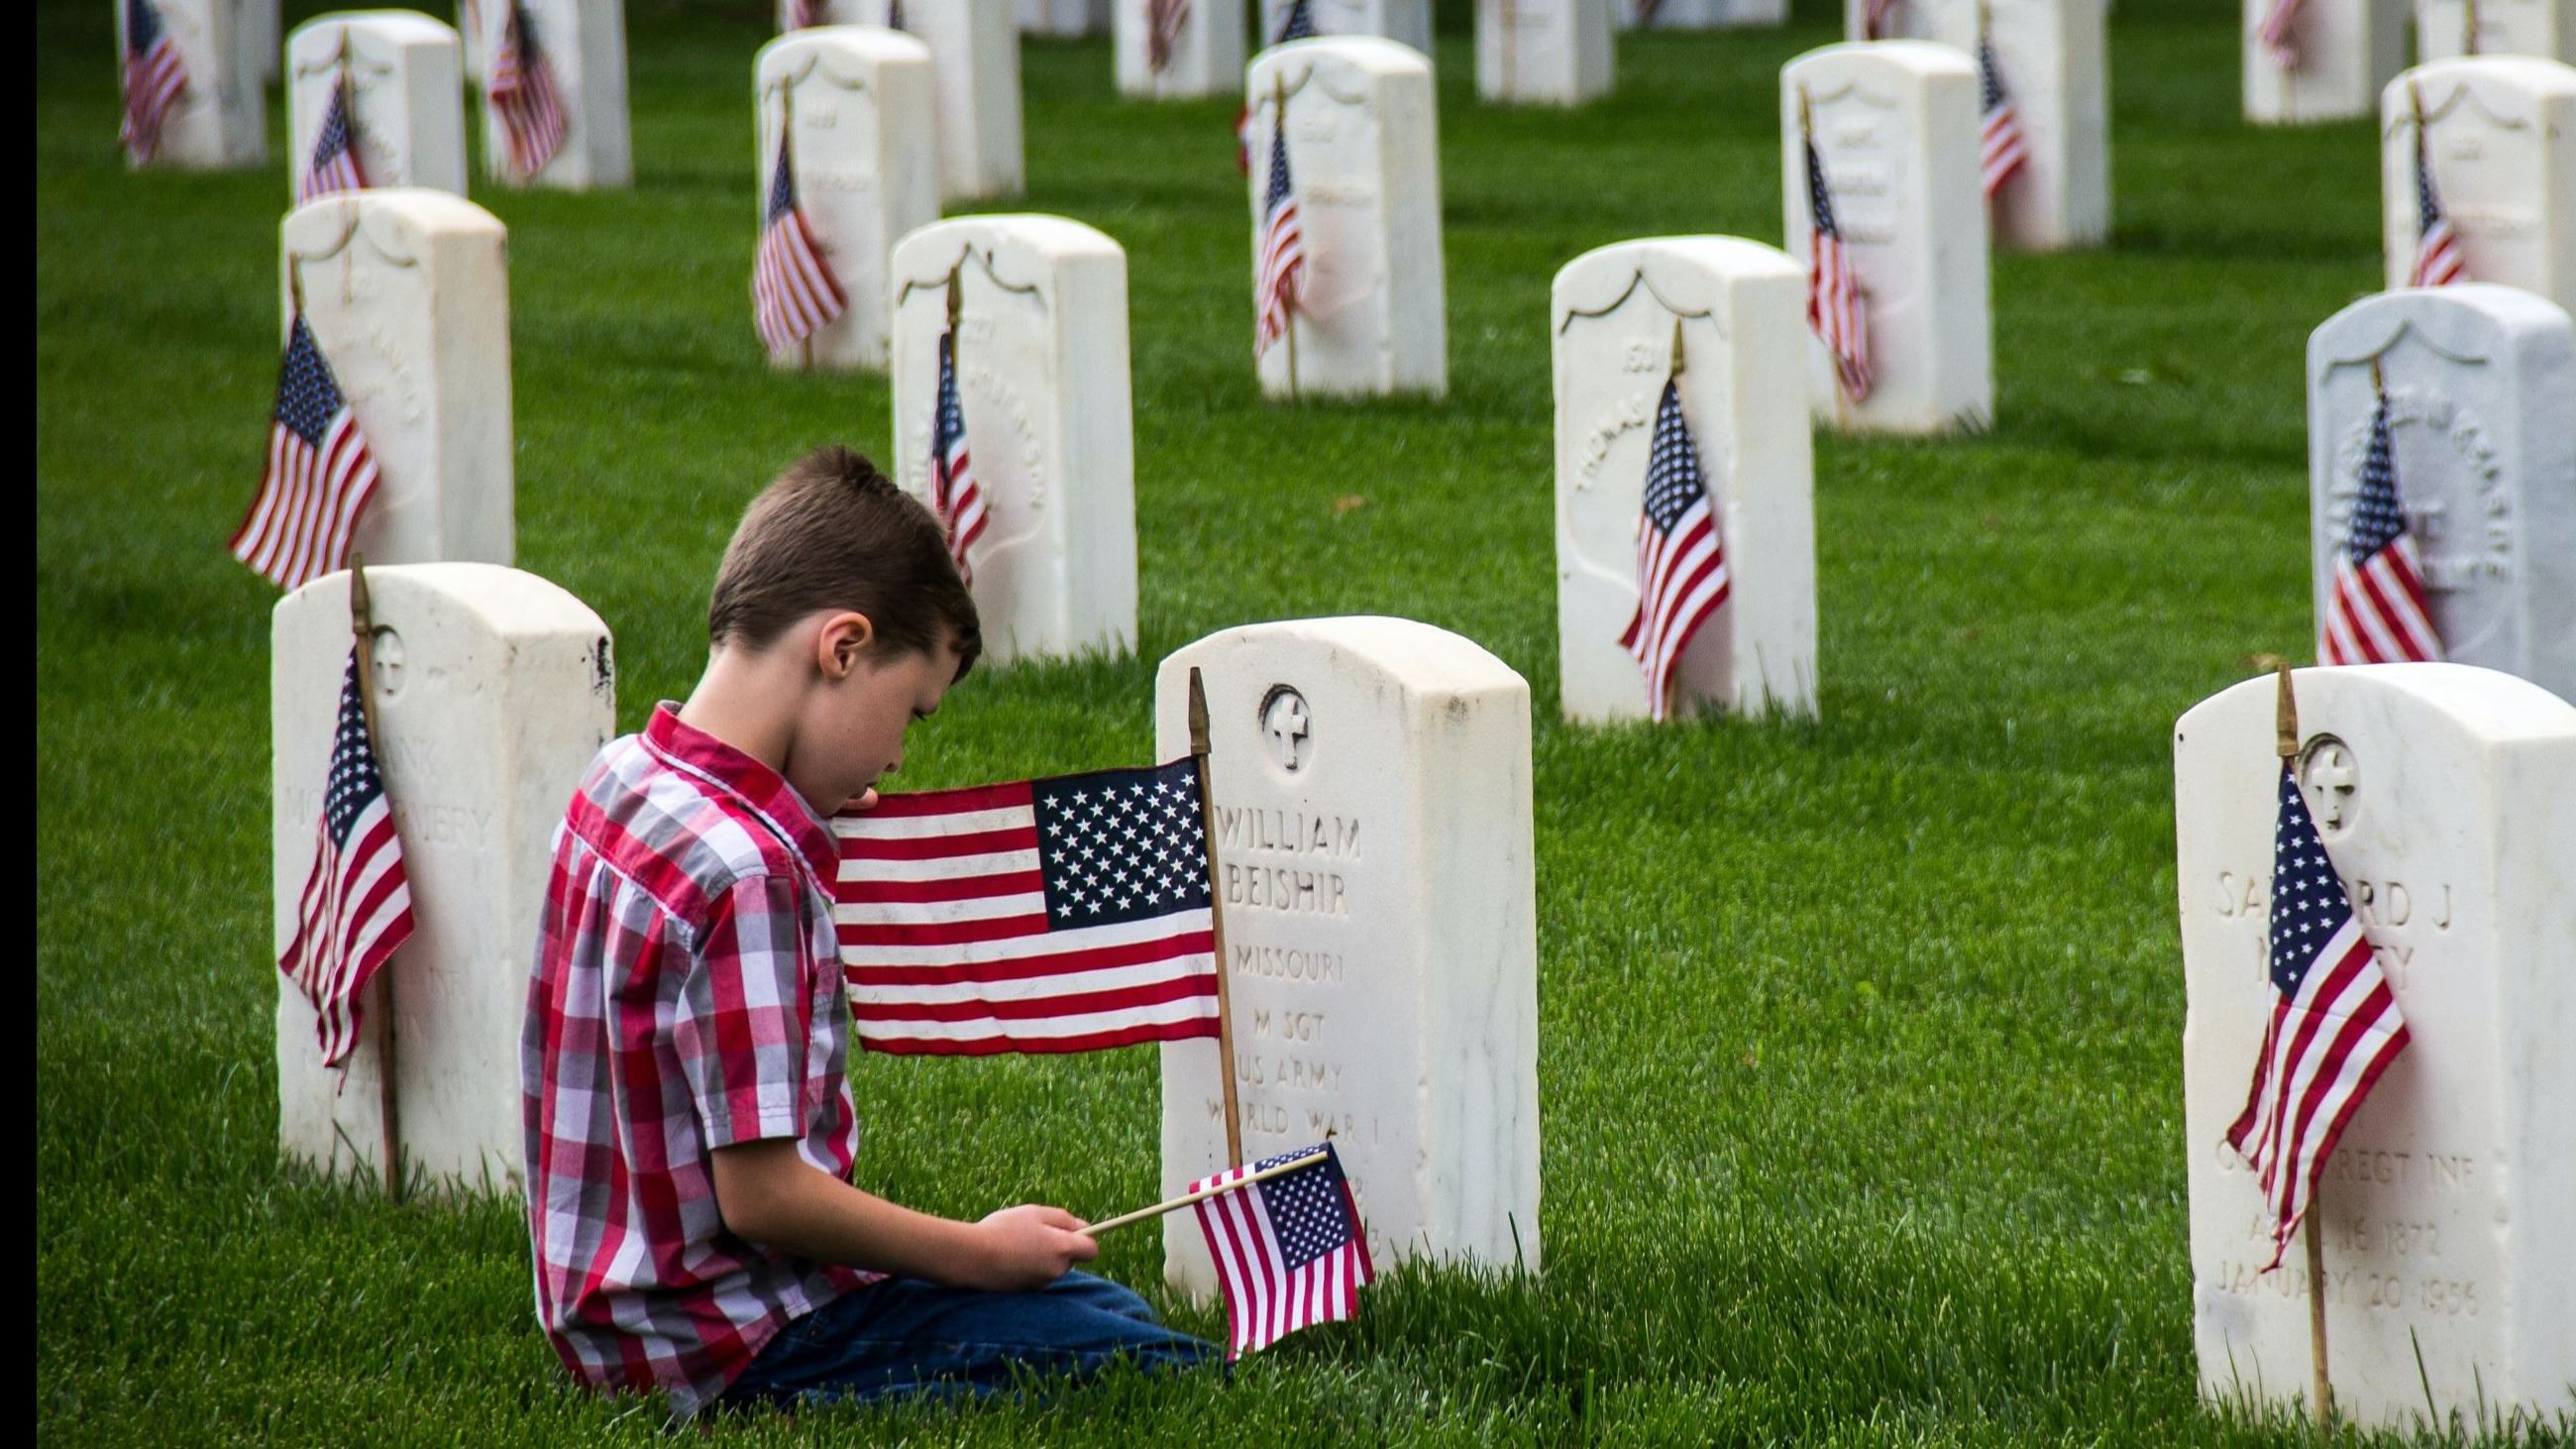 boy in red and white plaid shirt sitting on green grass with flags in front of military tombstone